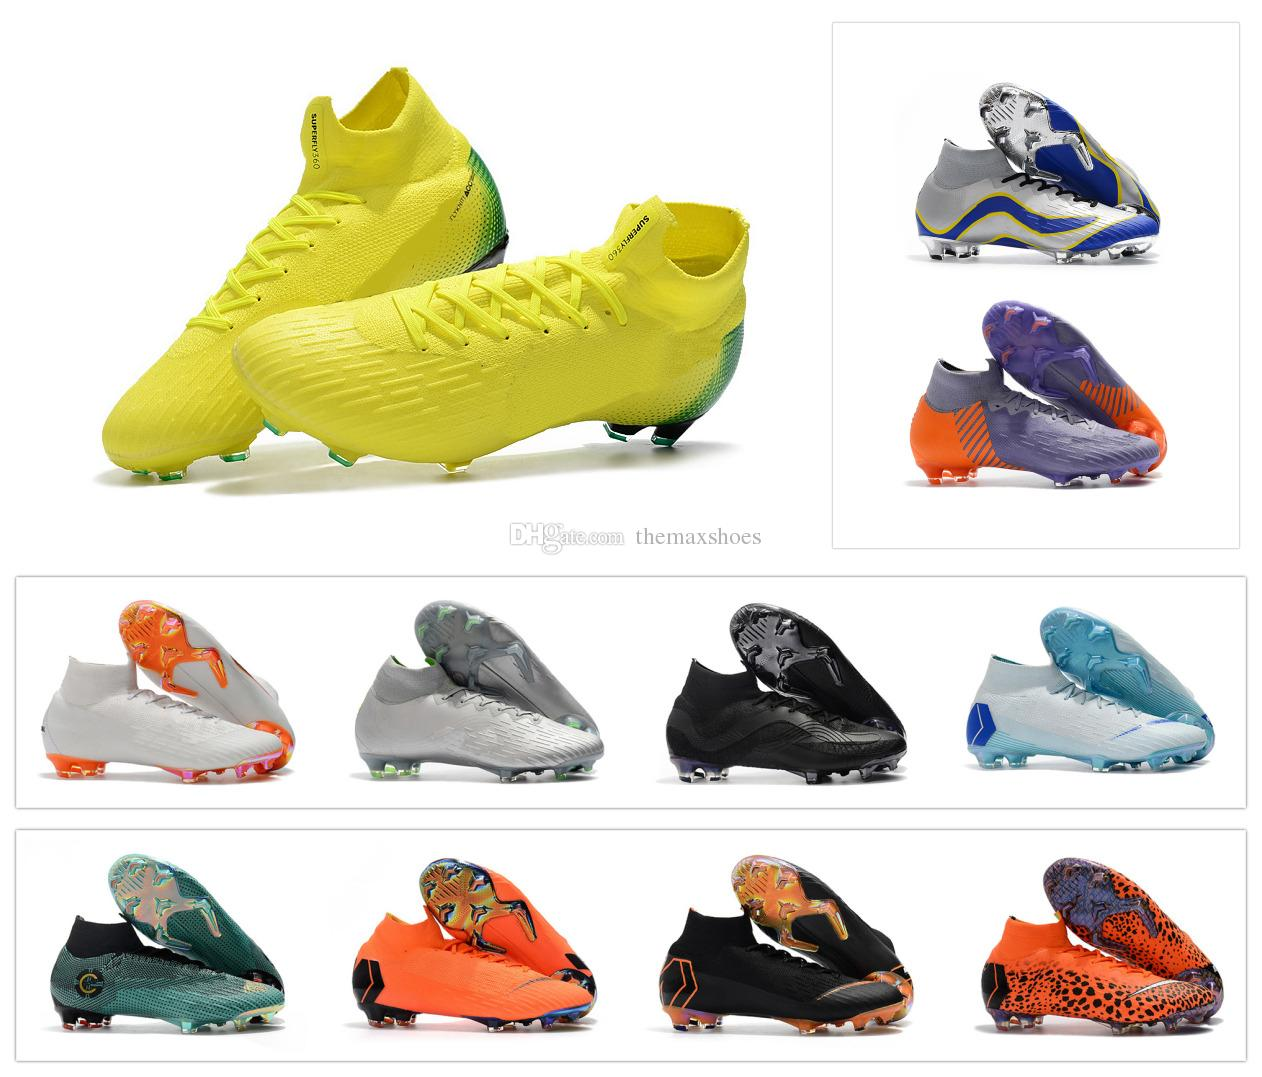 High Mens 2018 Mercurial Superfly VI 6 360 Elite FG CR7 Cristiano Ronaldo  20 YEARS OF SPEED Women Boys Soccer Football Shoes Boots US3 11 UK 2019  From ... 602e9e5076